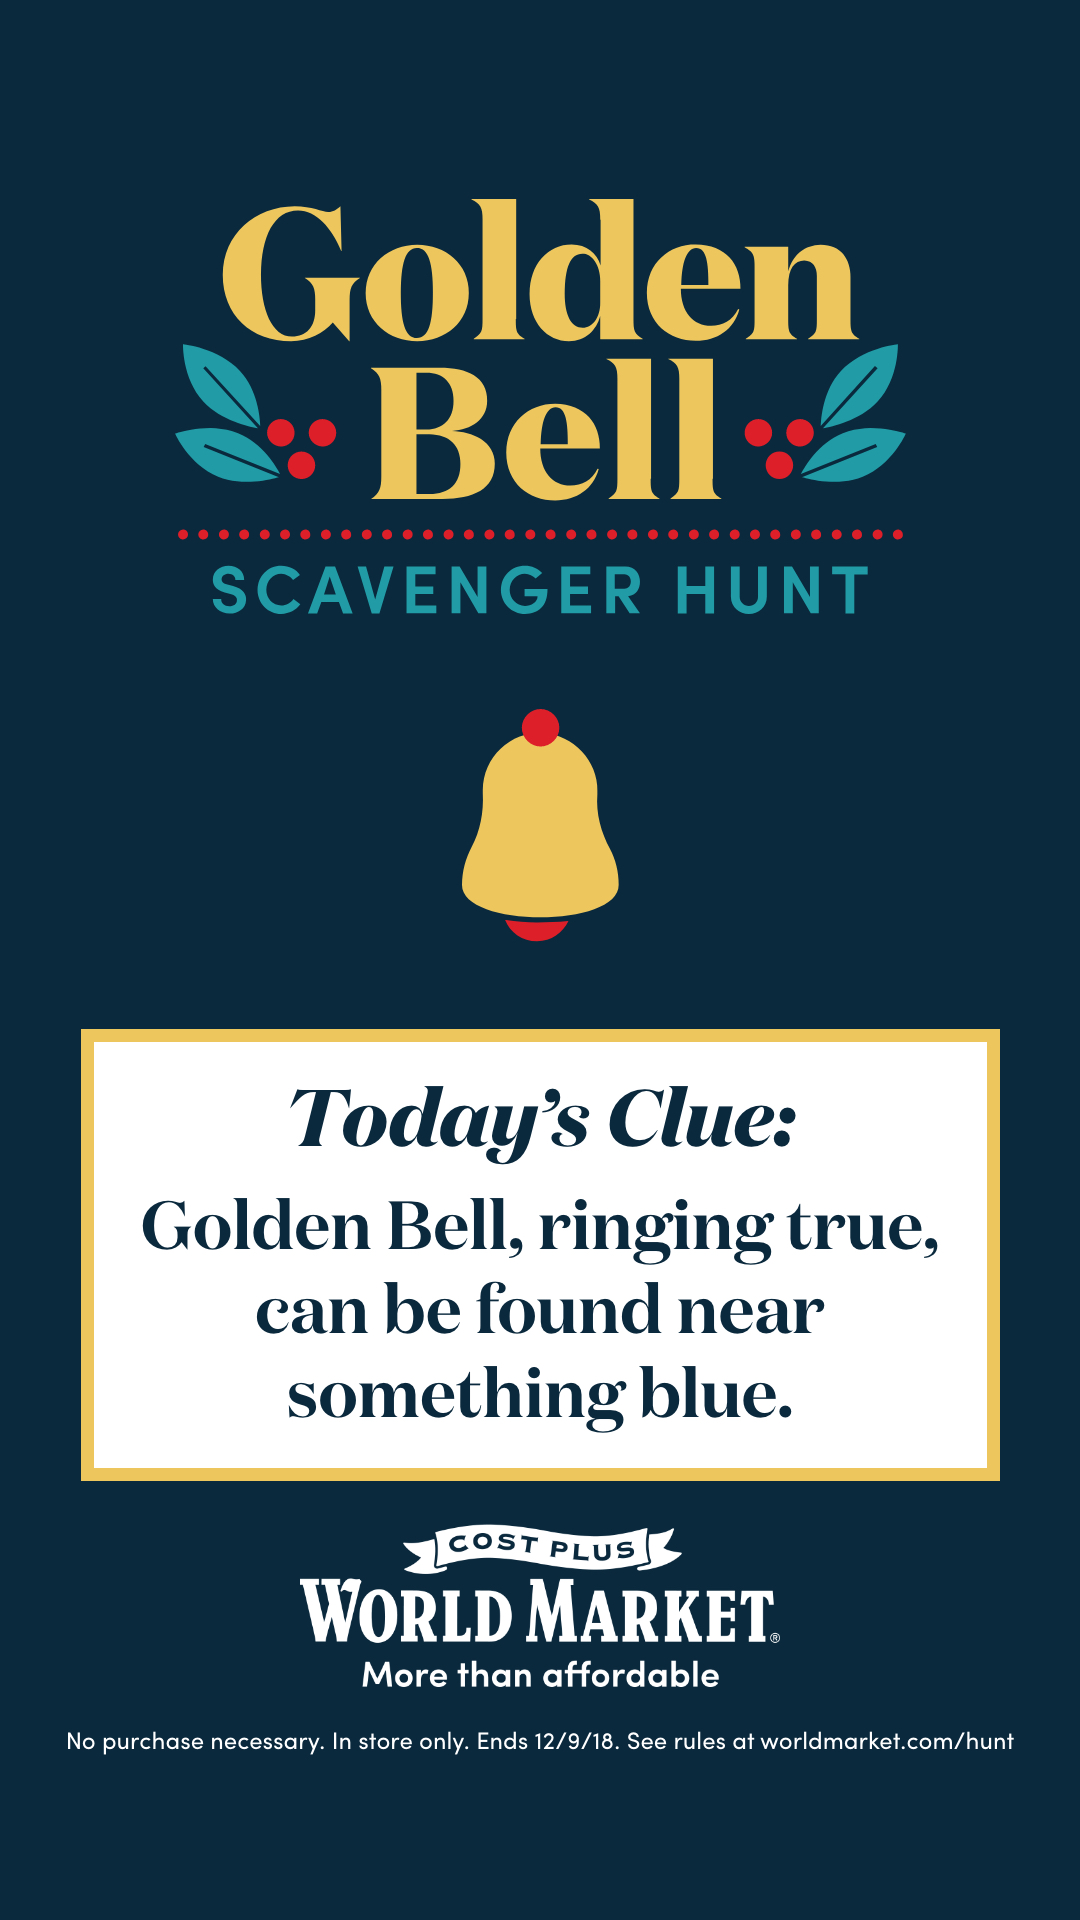 Cost Plus World Market Golden Bell Contest Clue Number 1